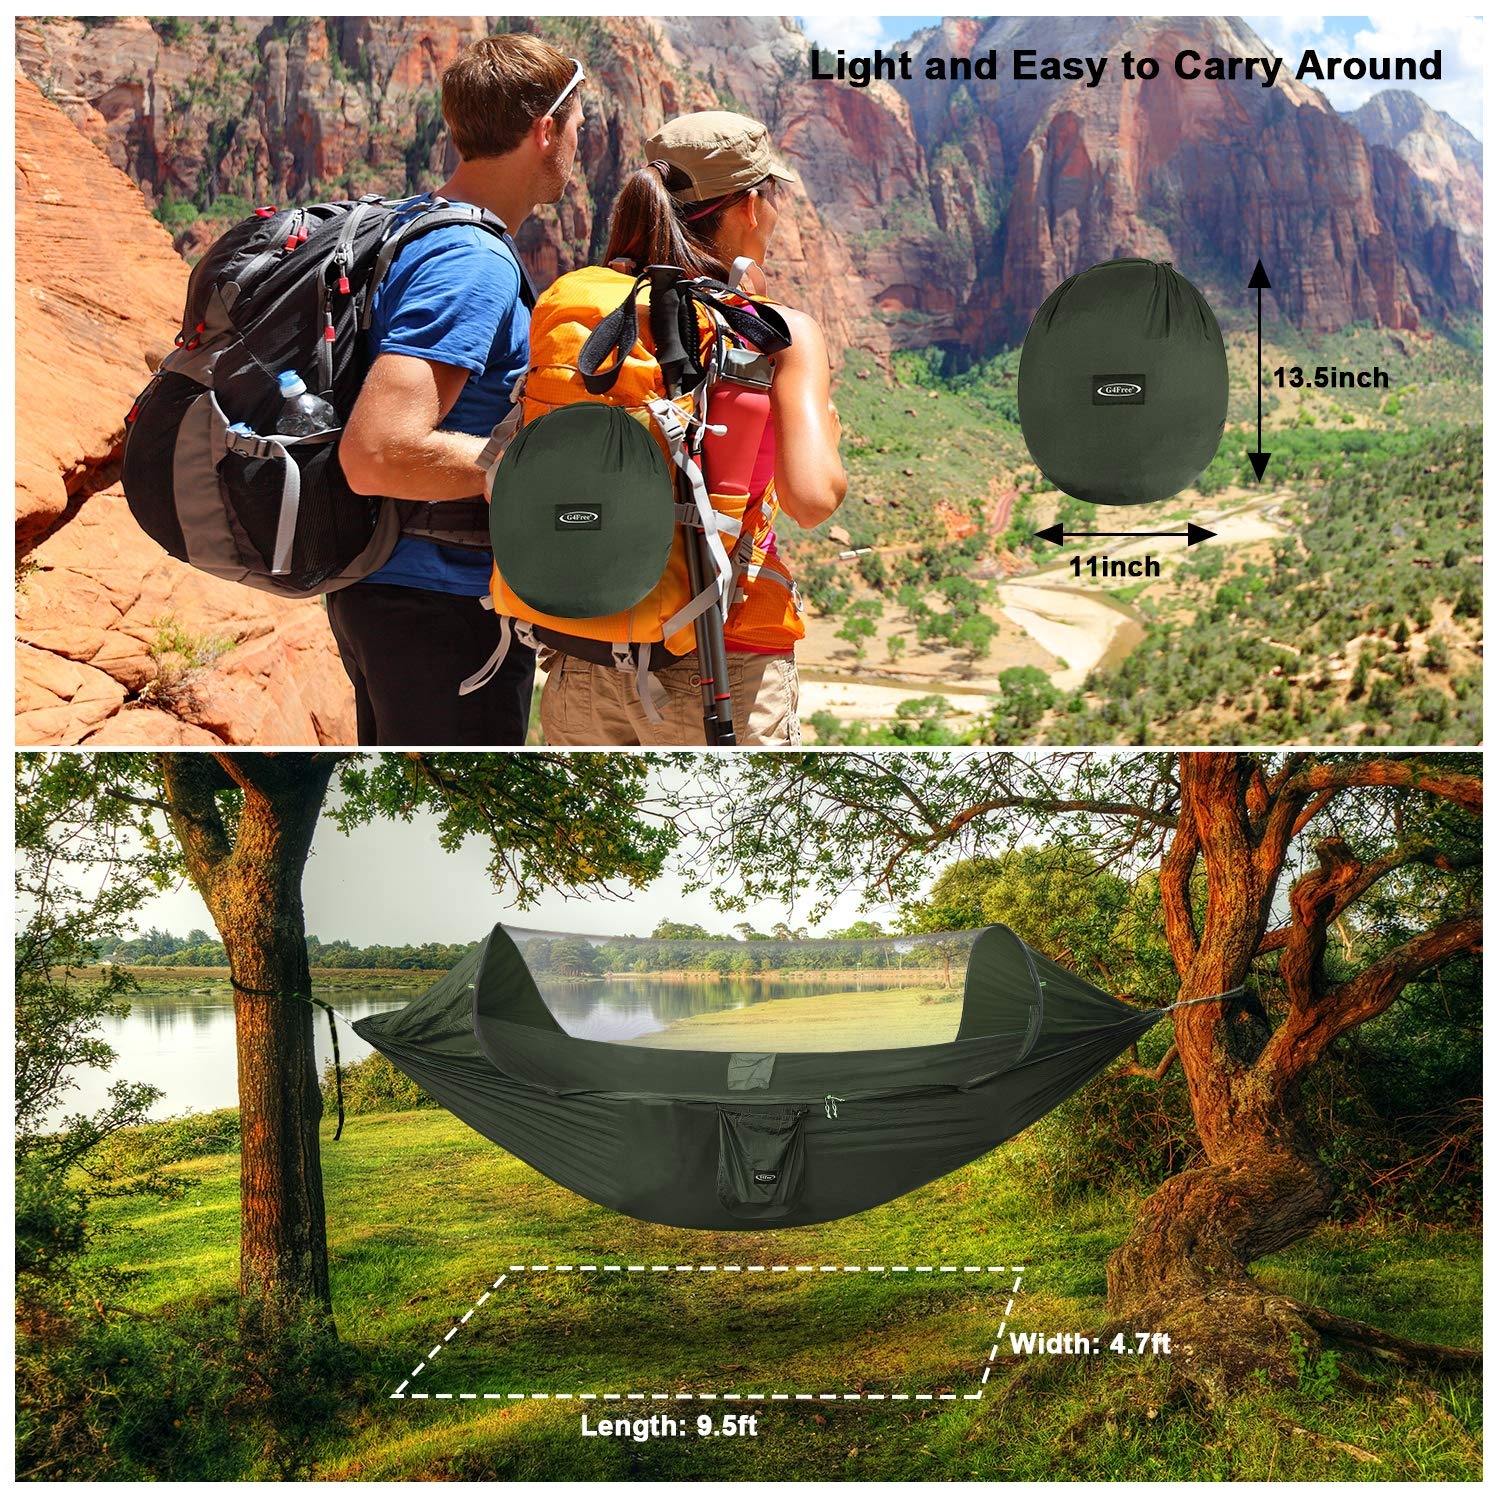 G4Free Large Camping Hammock with Mosquito Net Pop-up Parachute Lightweight Hanging Hammocks Tree Straps Swing Hammock Bed for Outdoor Backpacking Backyard Hiking